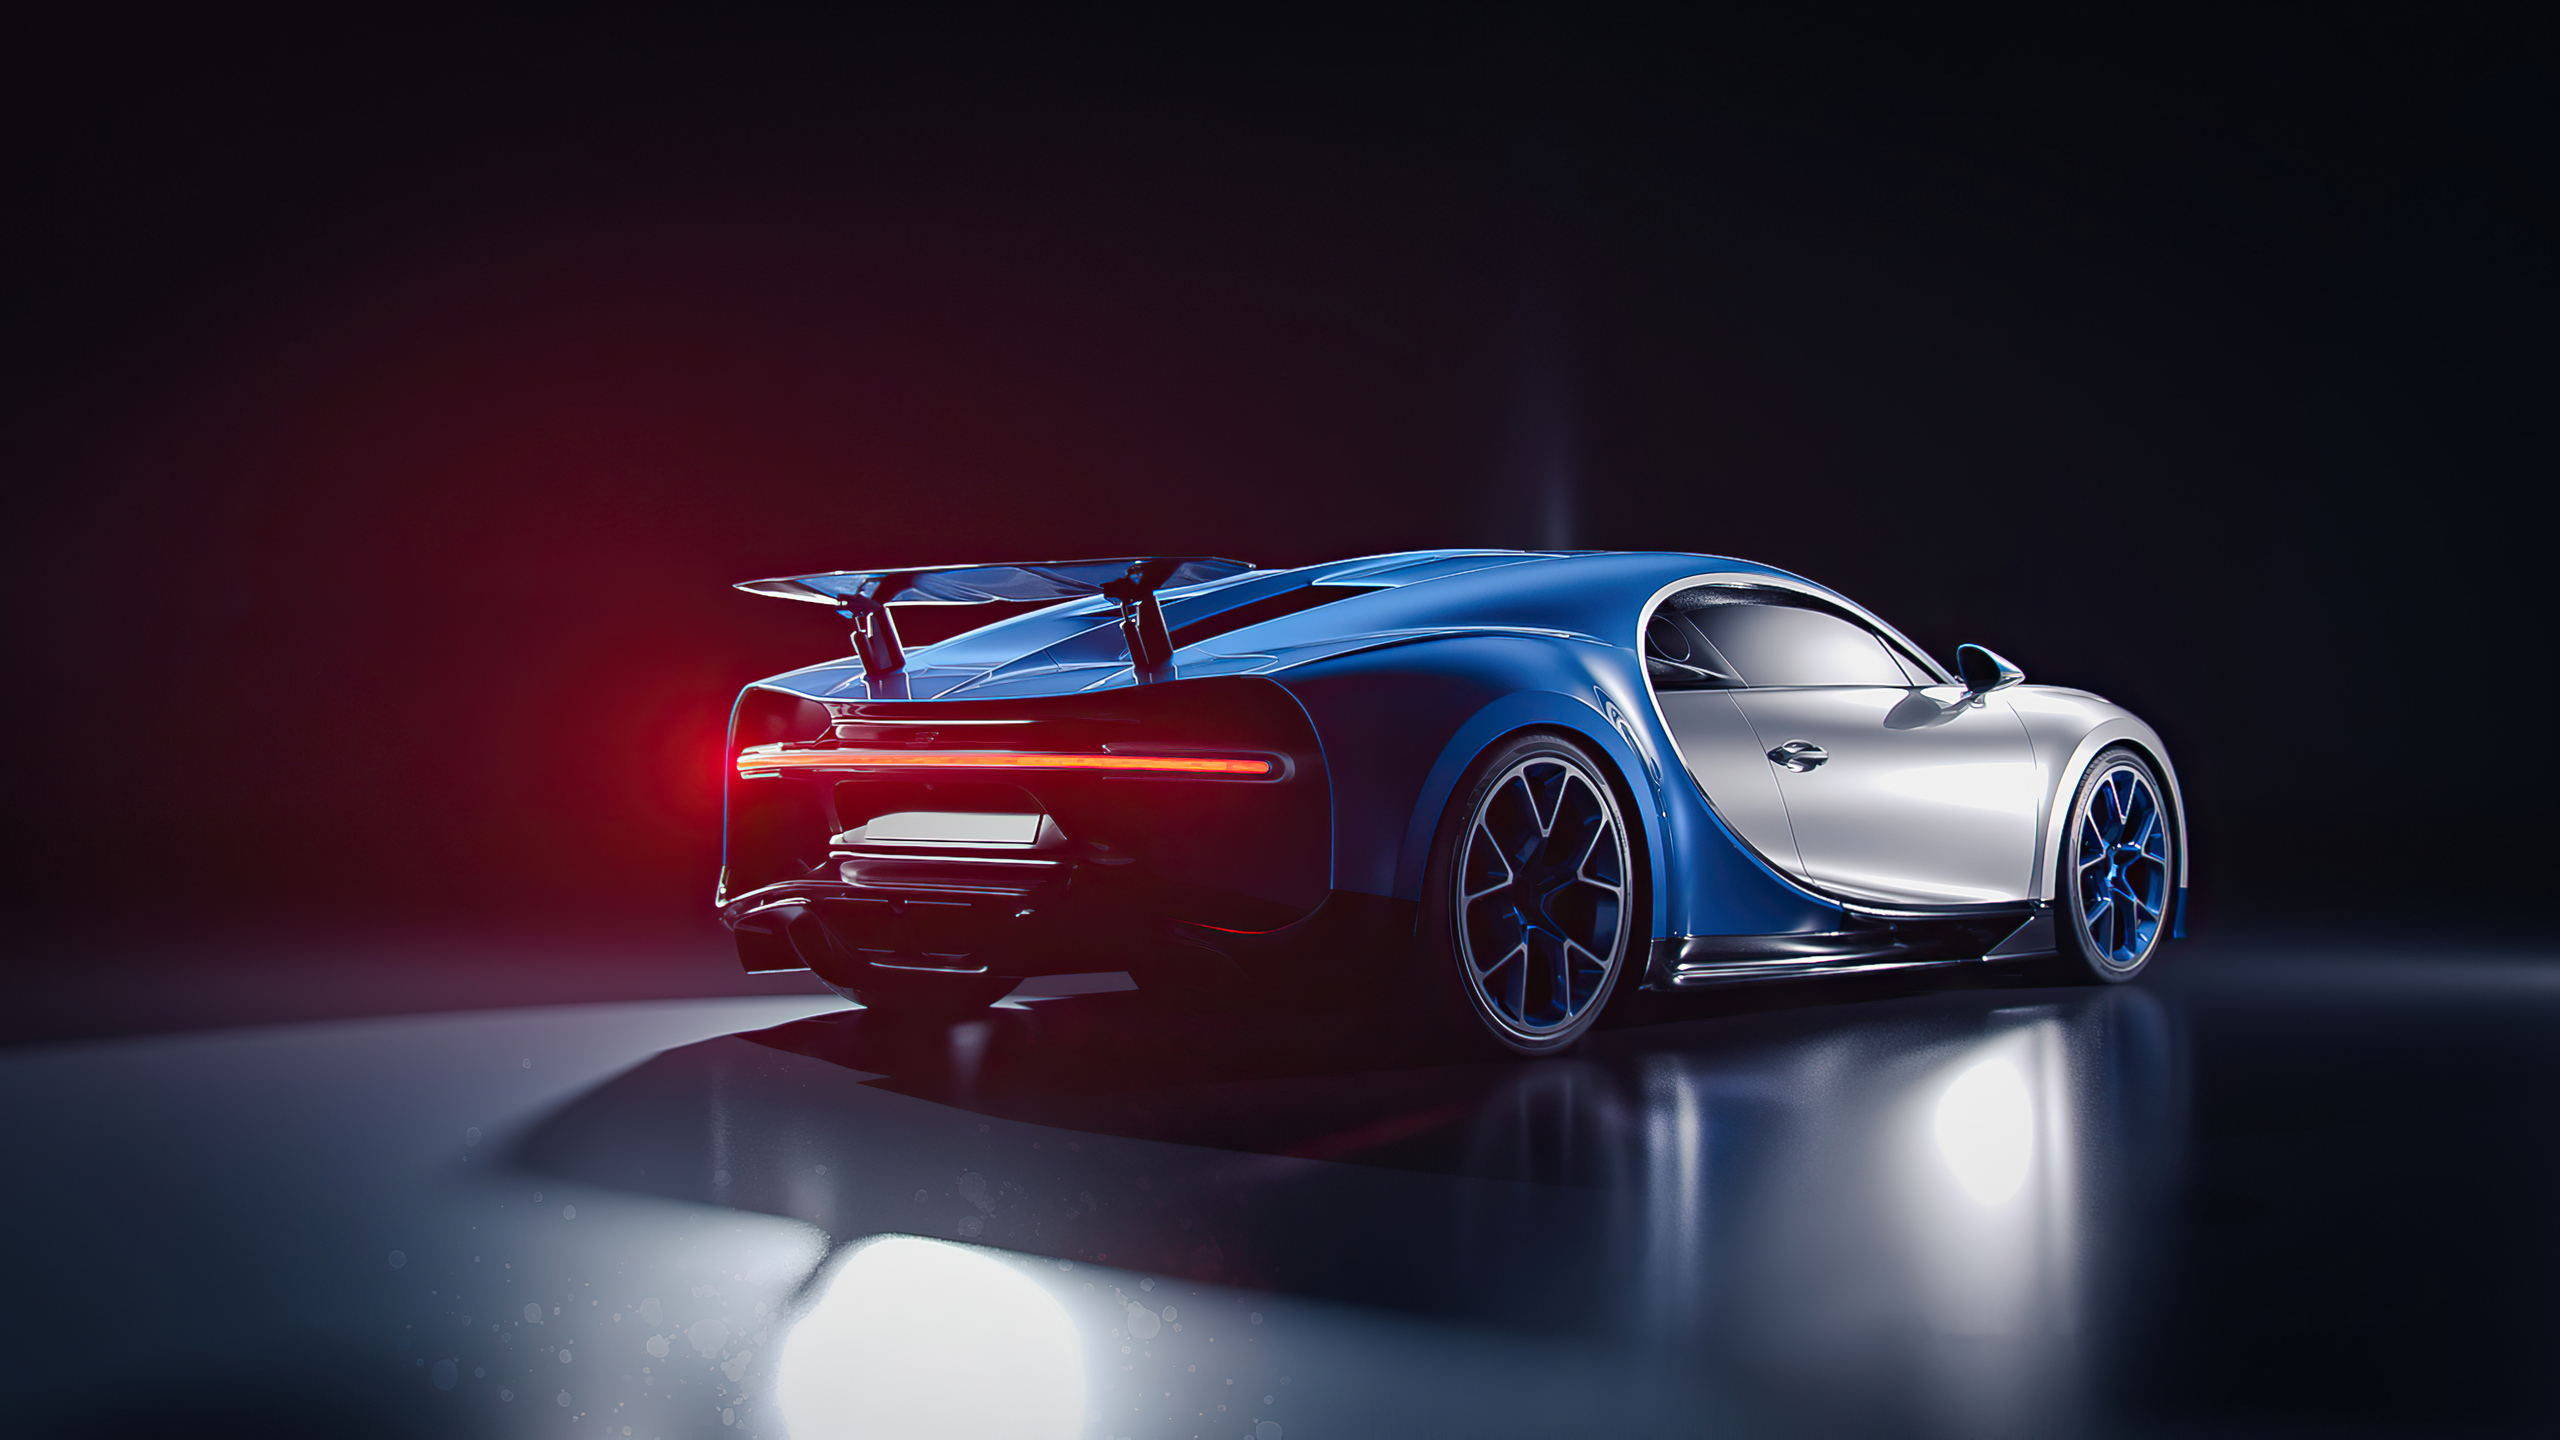 2560x1440 4k Bugatti Chiron 2020 1440p Resolution Hd 4k Wallpapers Images Backgrounds Photos And Pictures